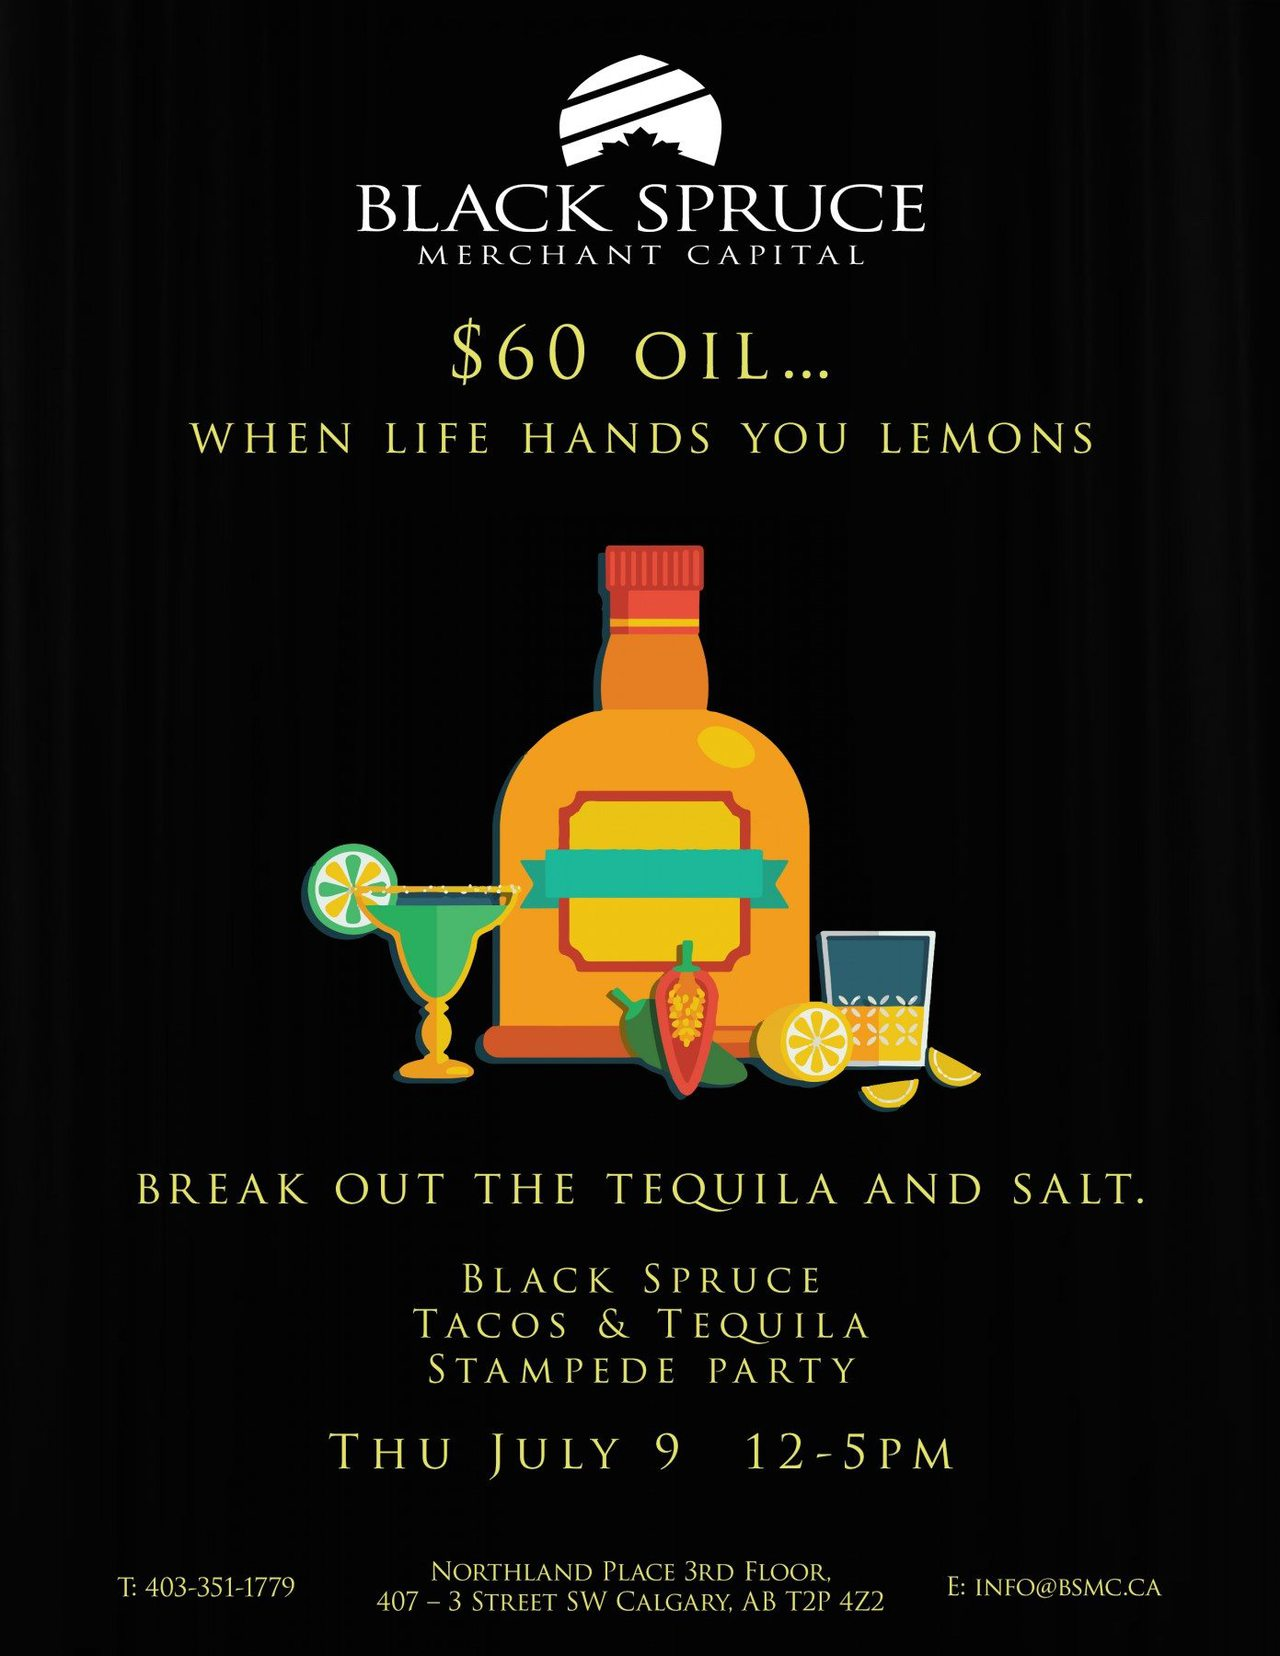 Black_Spruce_-_Stampede_Party_Invite_04